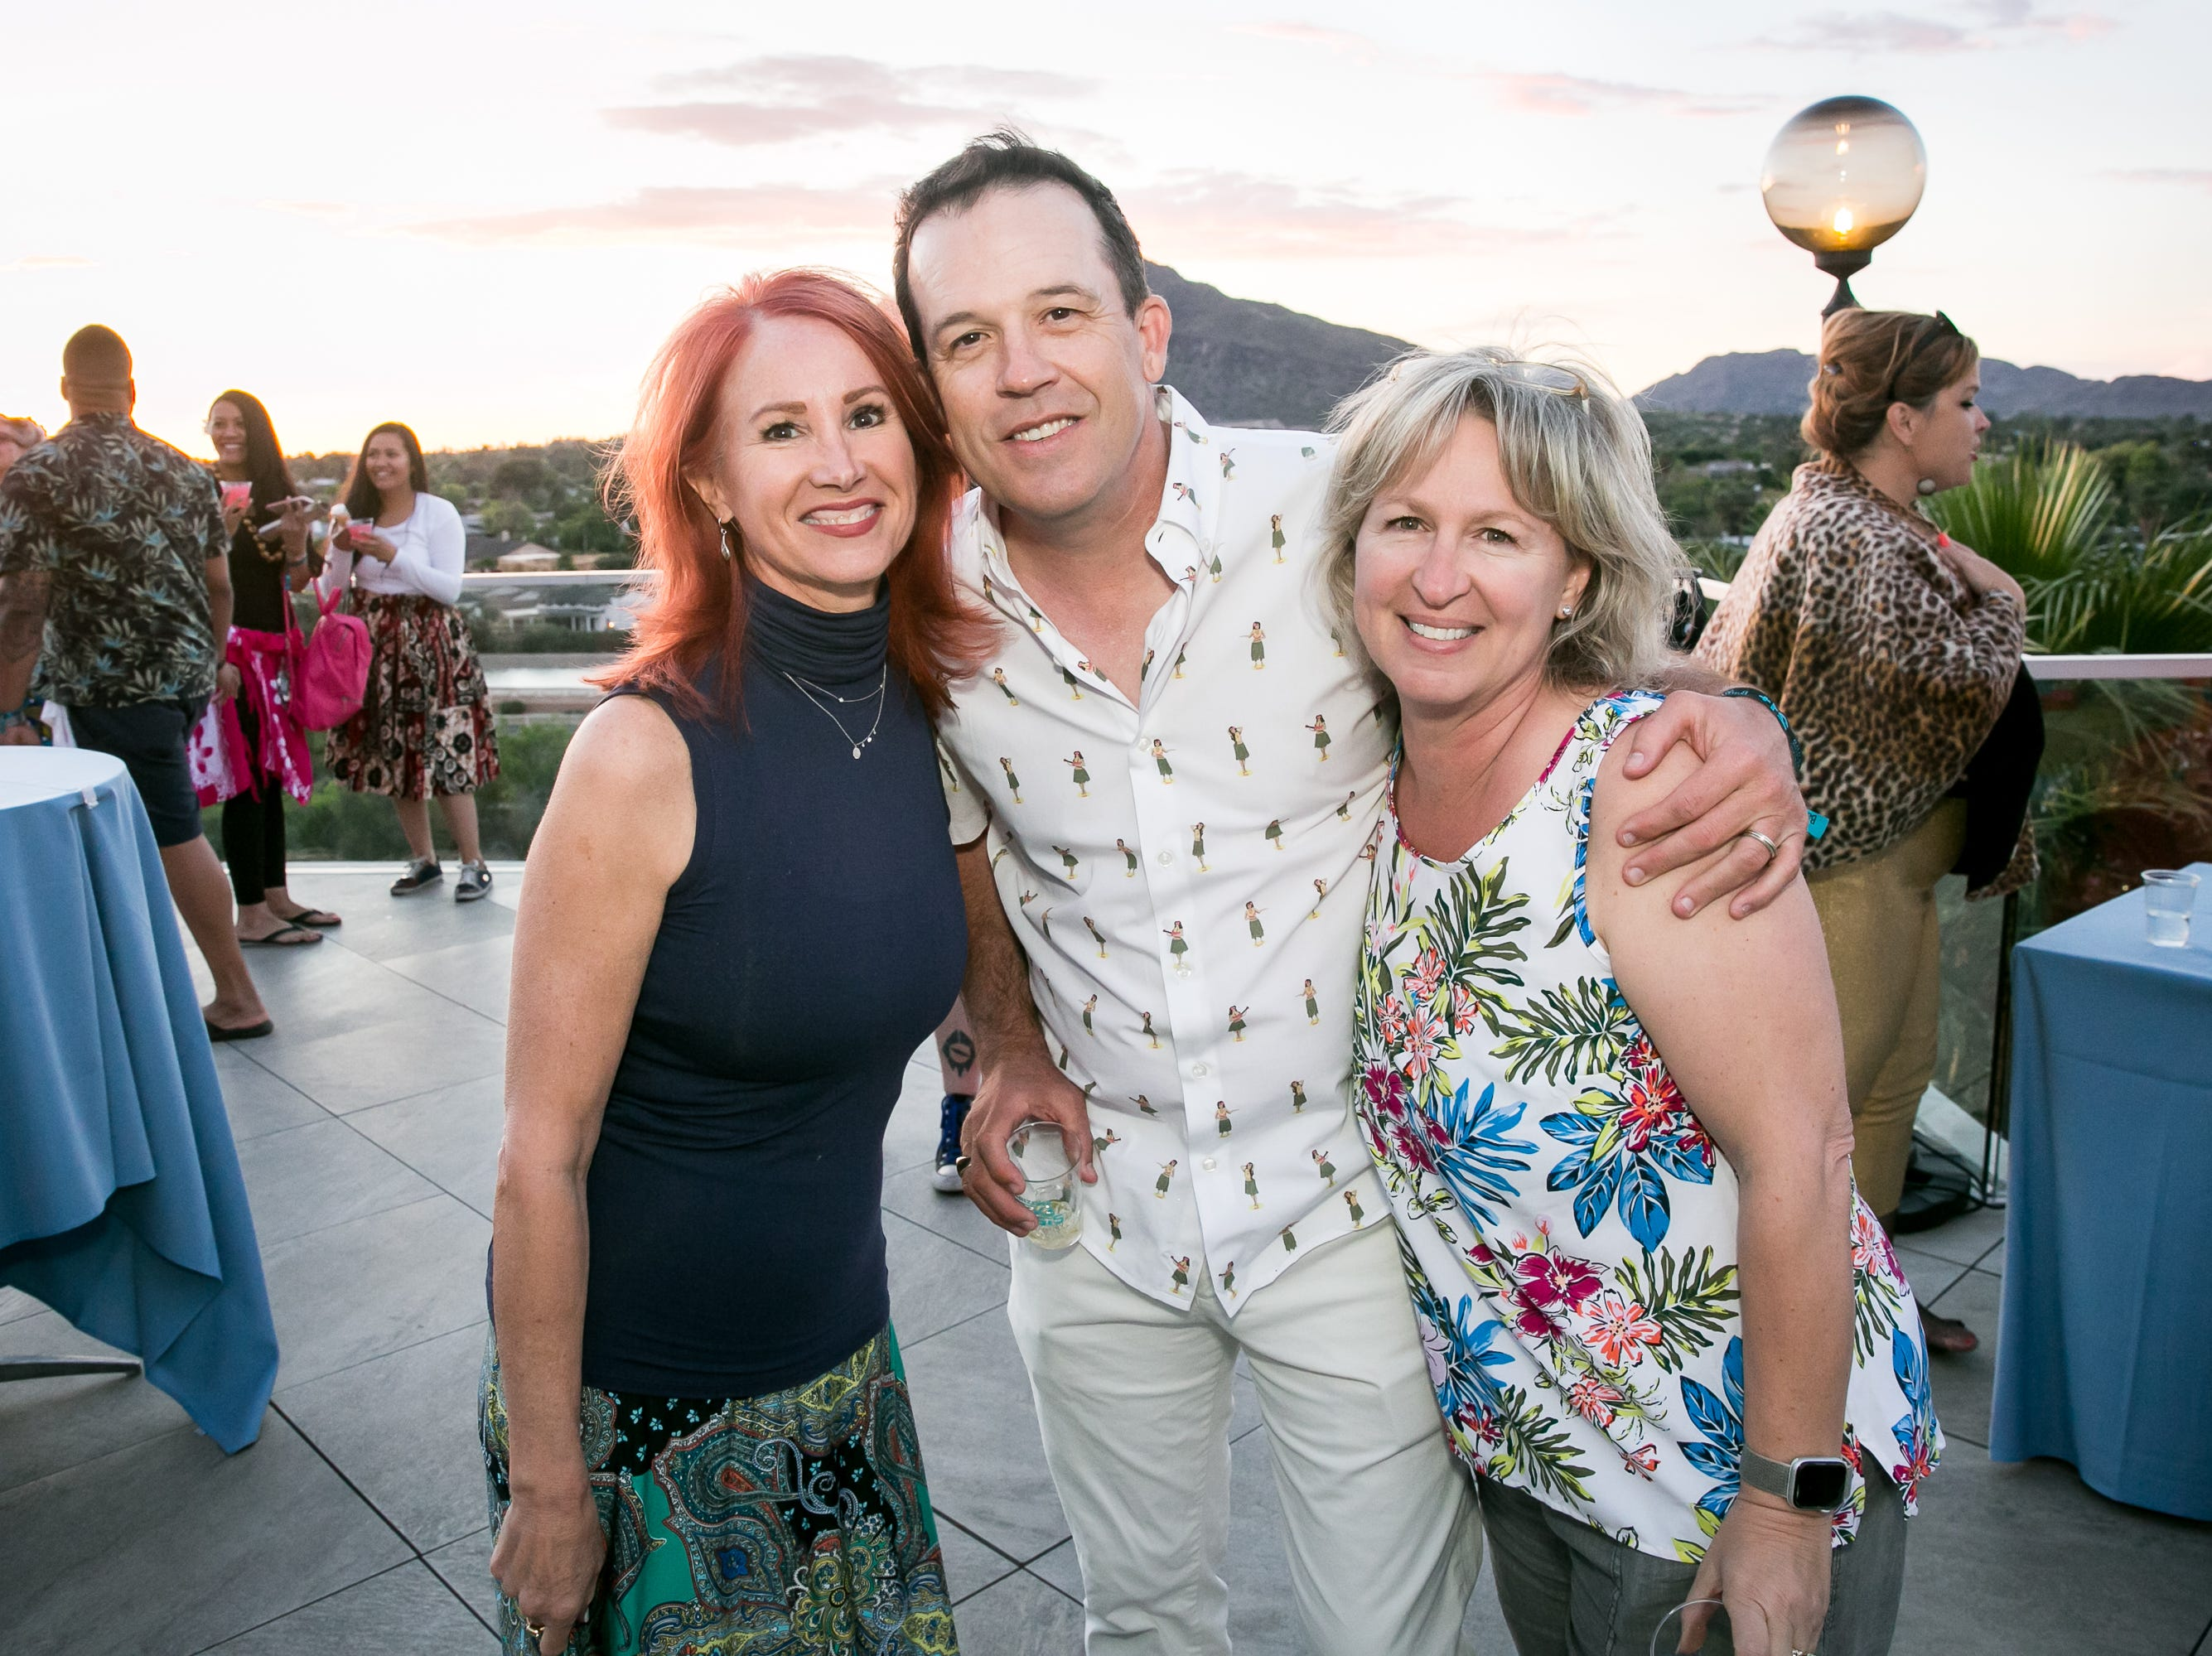 This trio enjoyed a lovely sunset during Arizona Tiki Oasis at Hotel Valley Ho in Scottsdale on April 12, 2019.